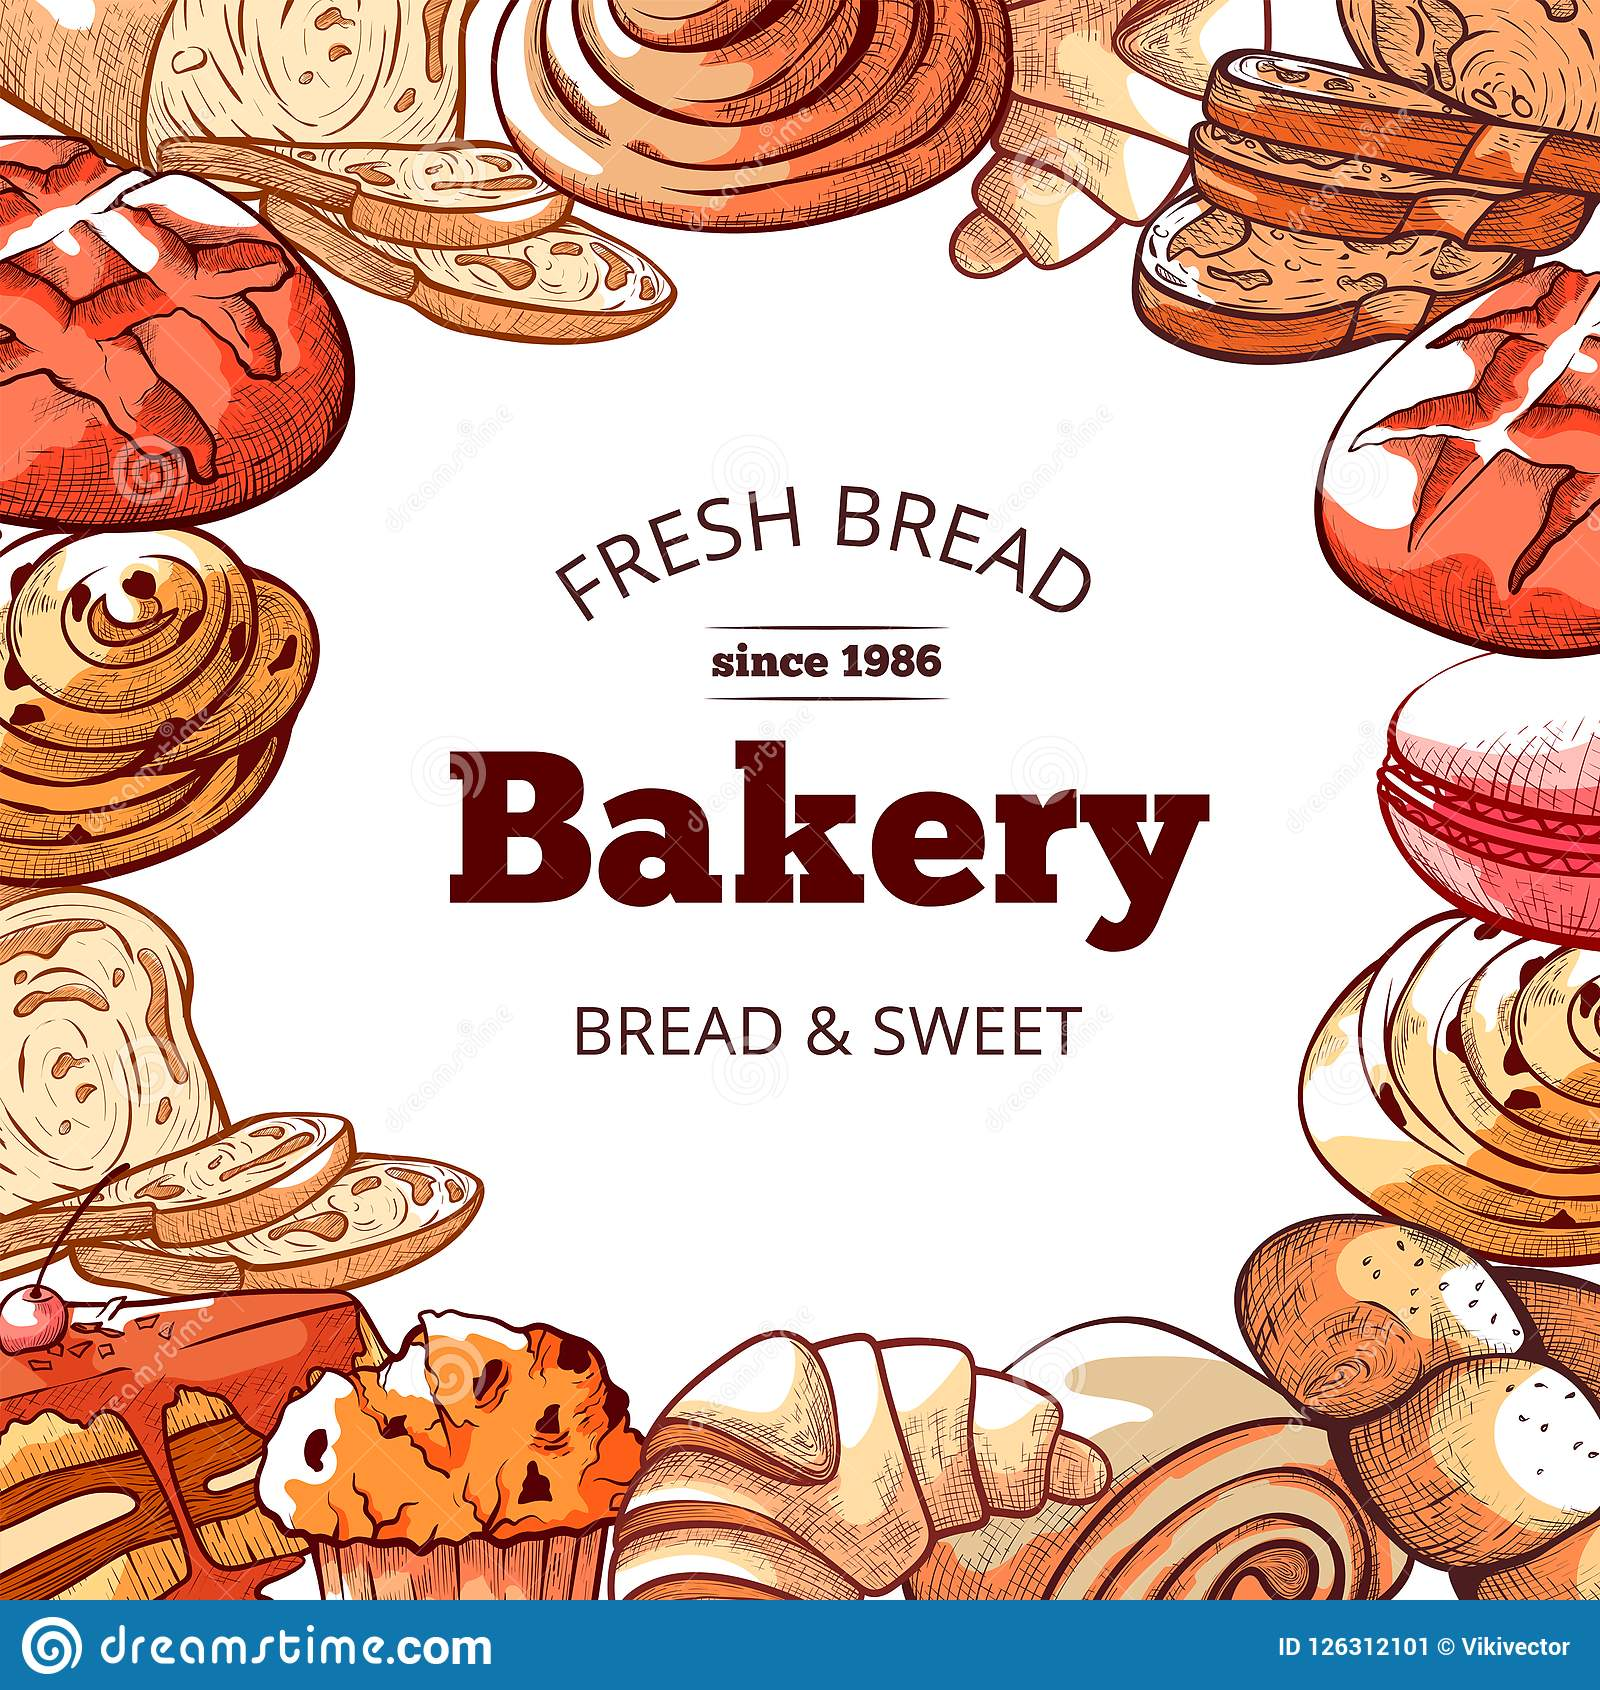 Bakery products, fresh and tasty bread background